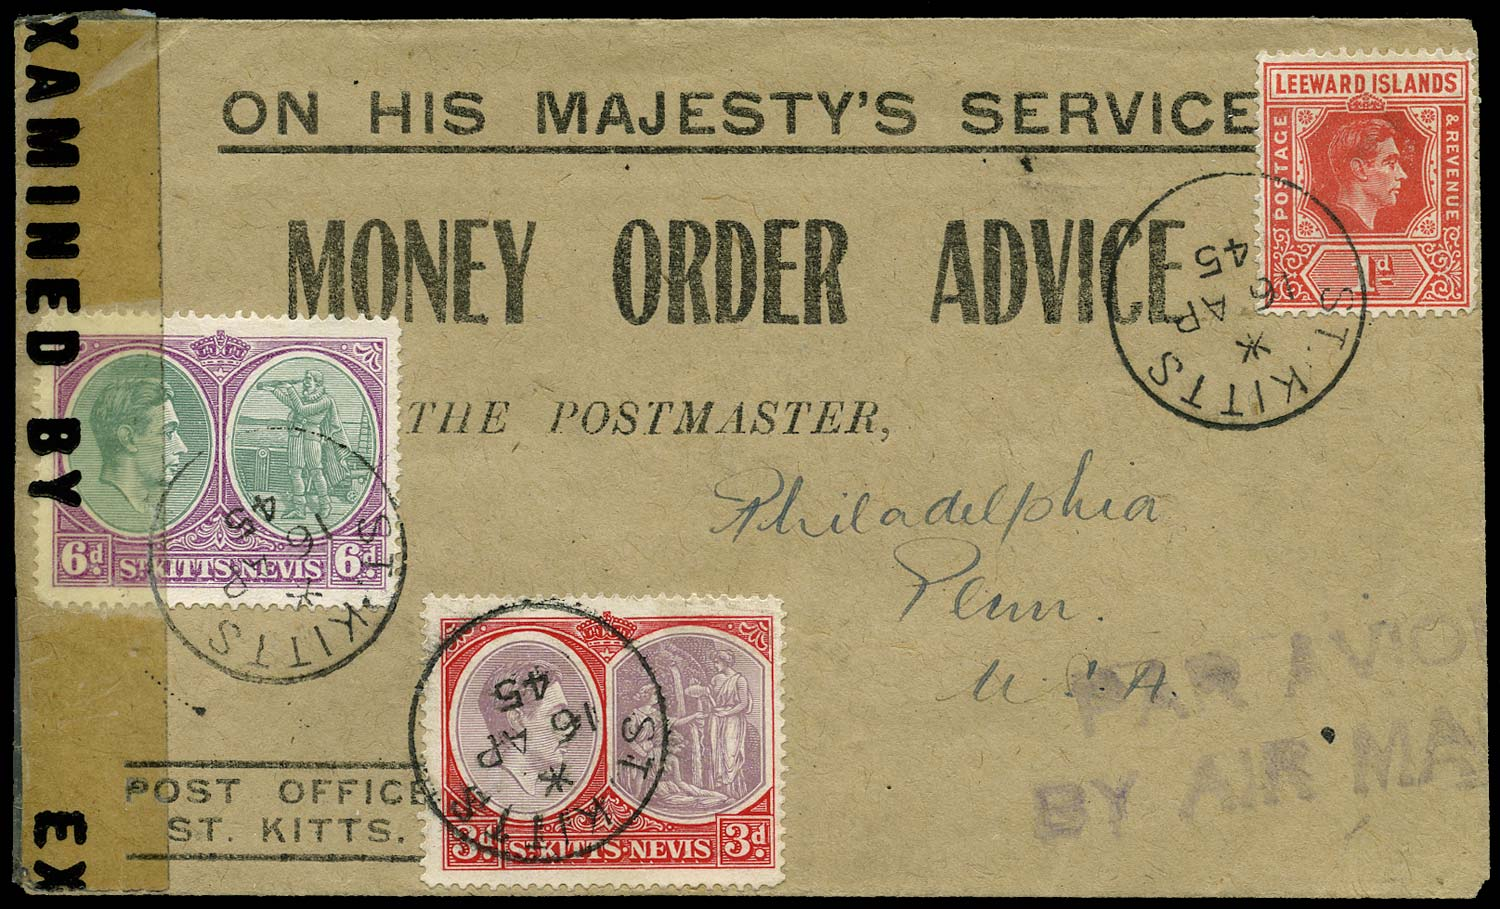 ST KITTS NEVIS 1945  SG73b, 74b Cover OHMS Money Order Advice airmail censored